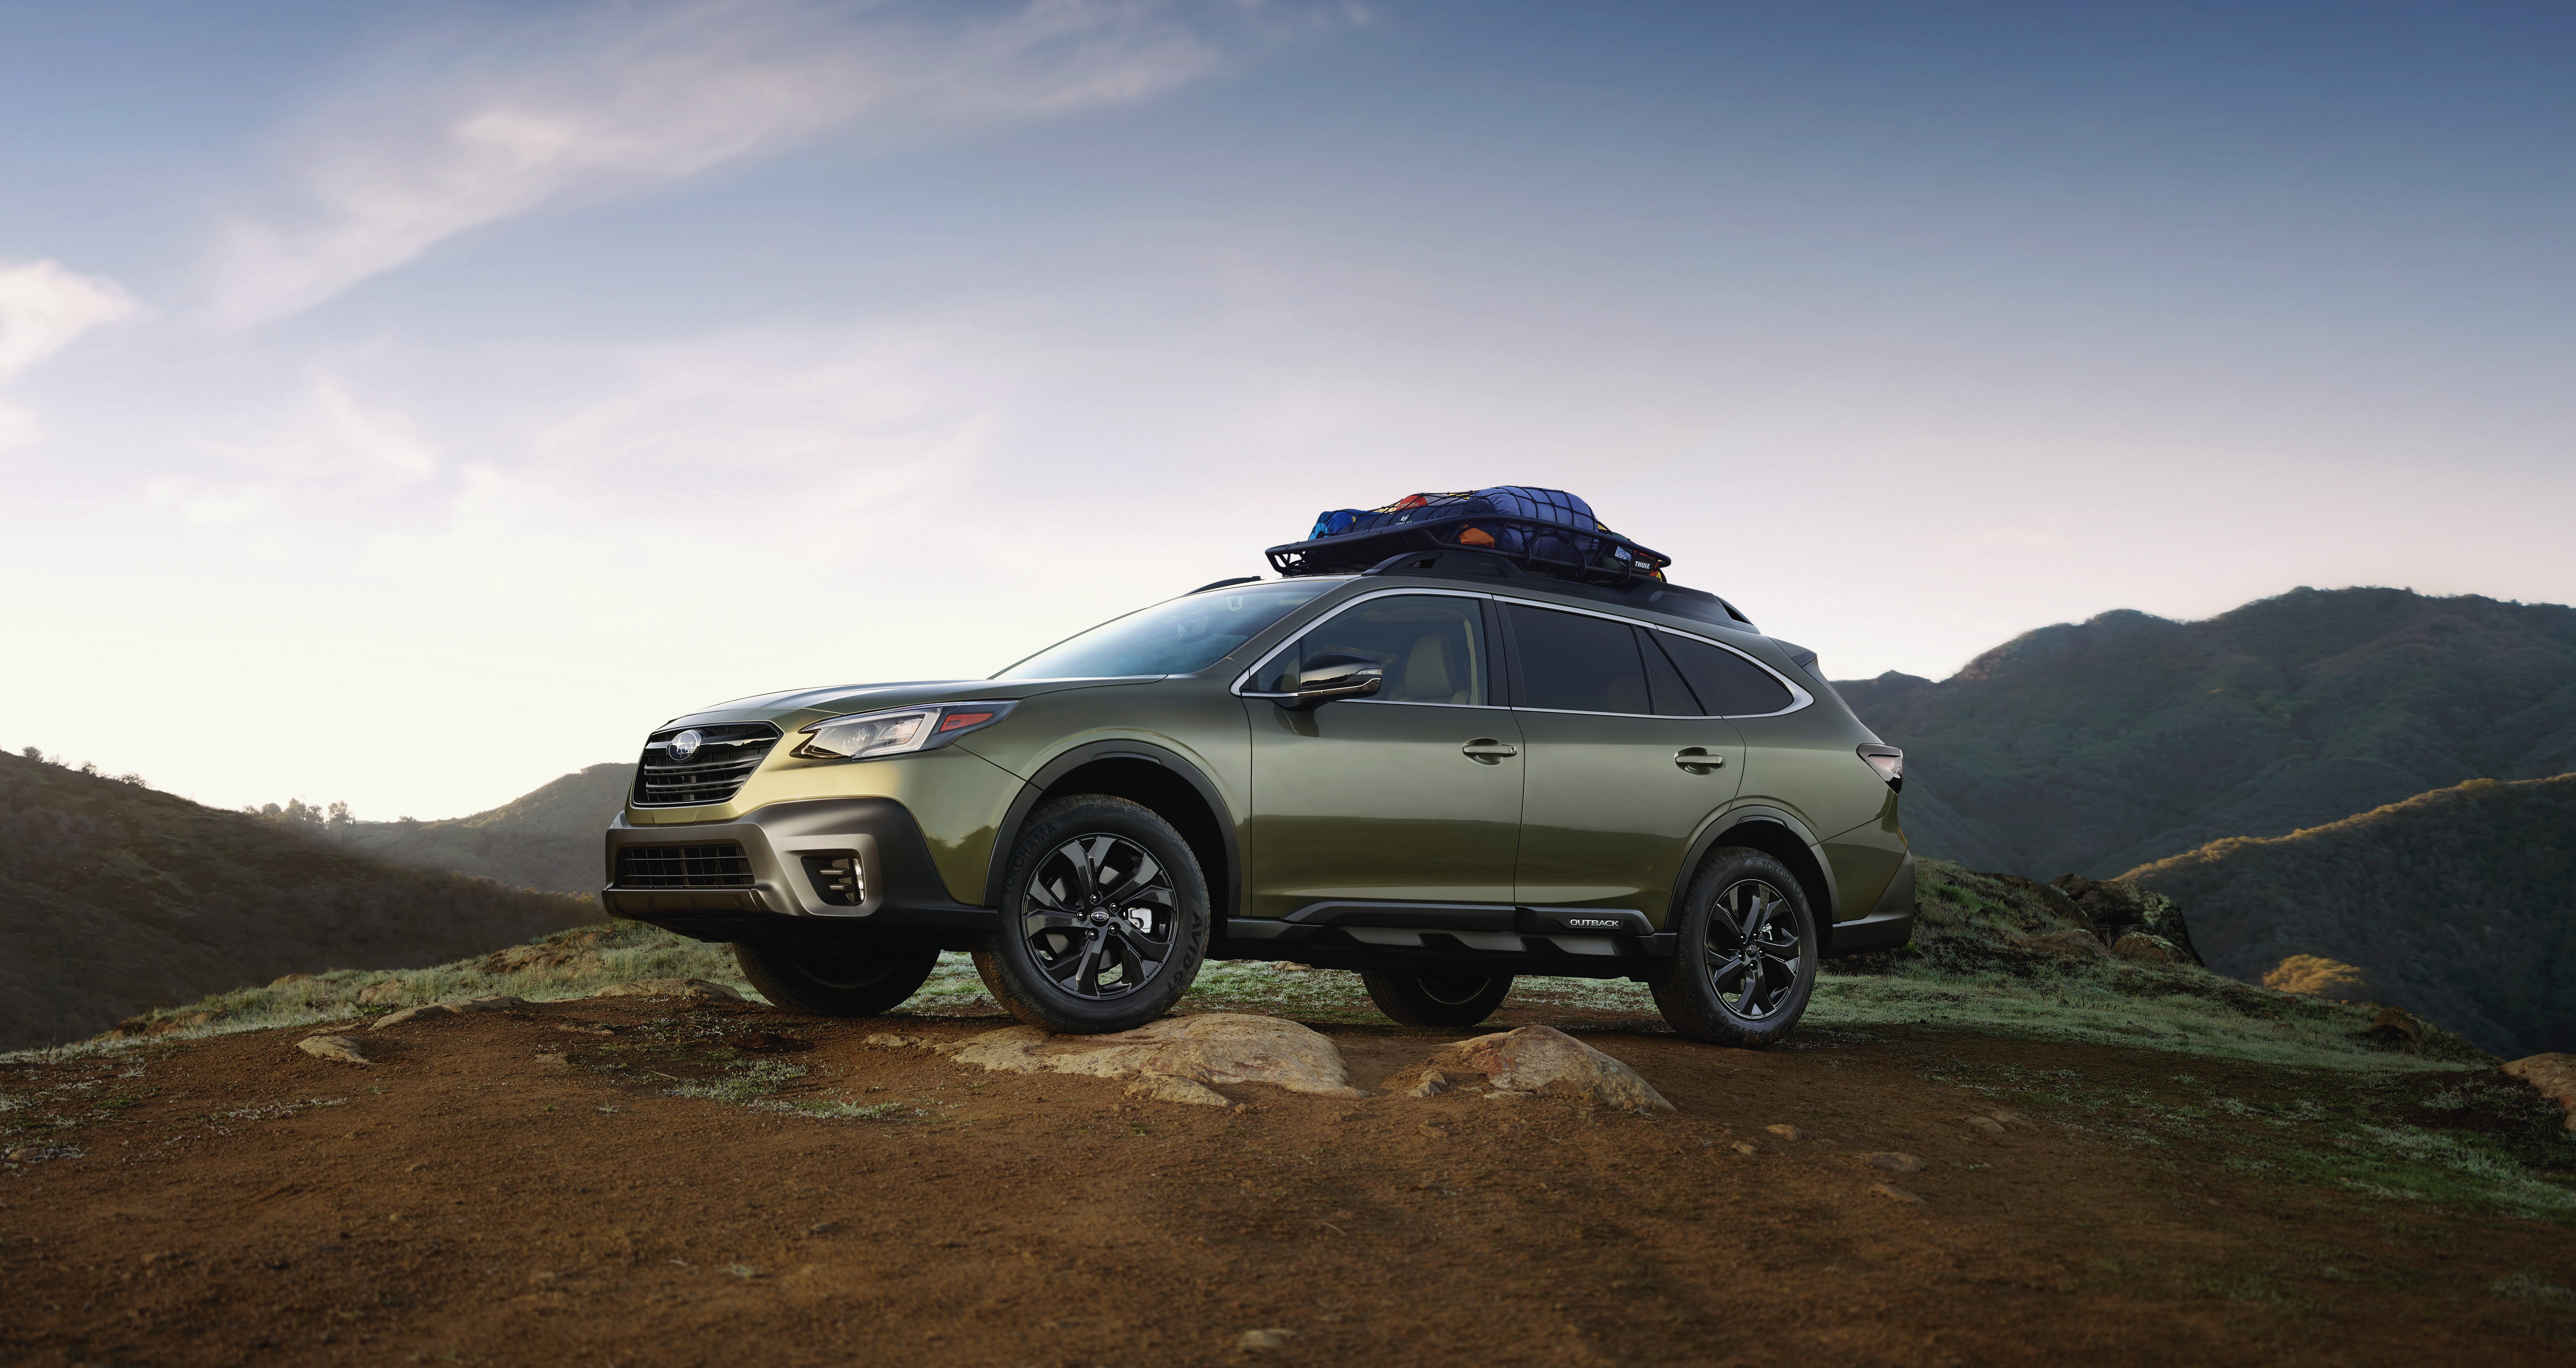 Can the Subaru Outback Tow a Camper Trailer?